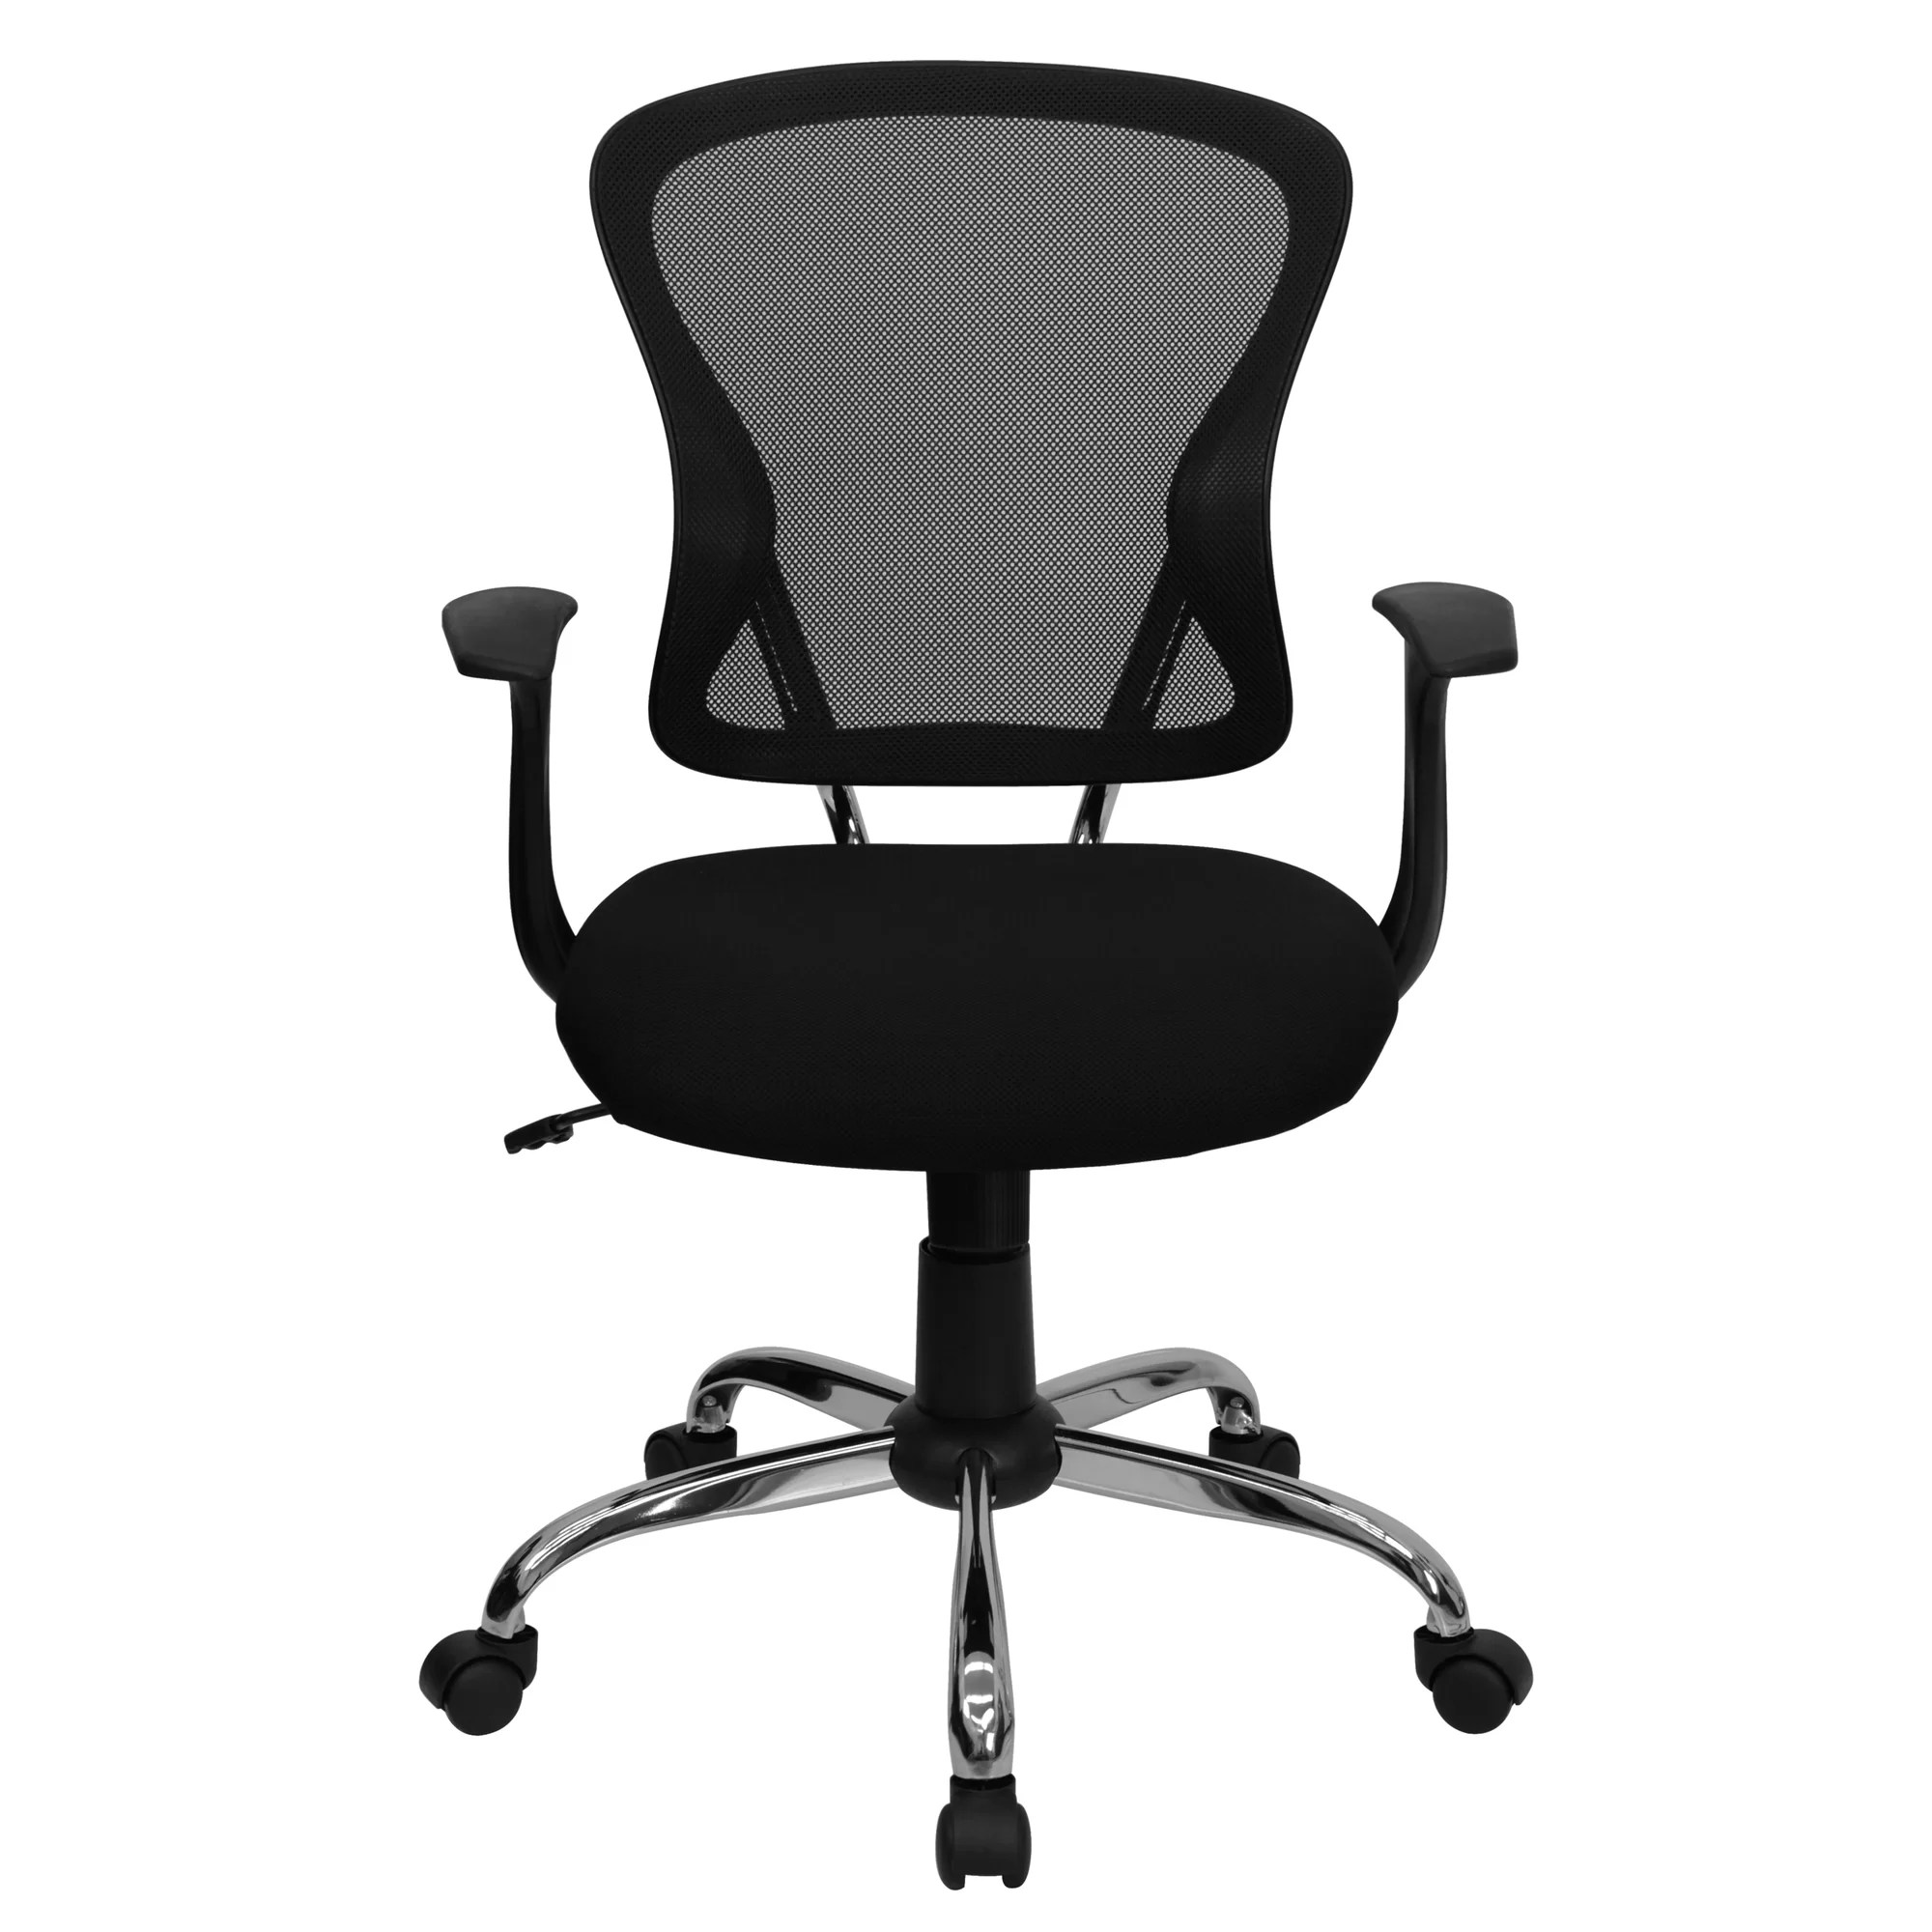 mesh gaming chair dicks beach chairs symple stuff clay mid back desk and reviews wayfair